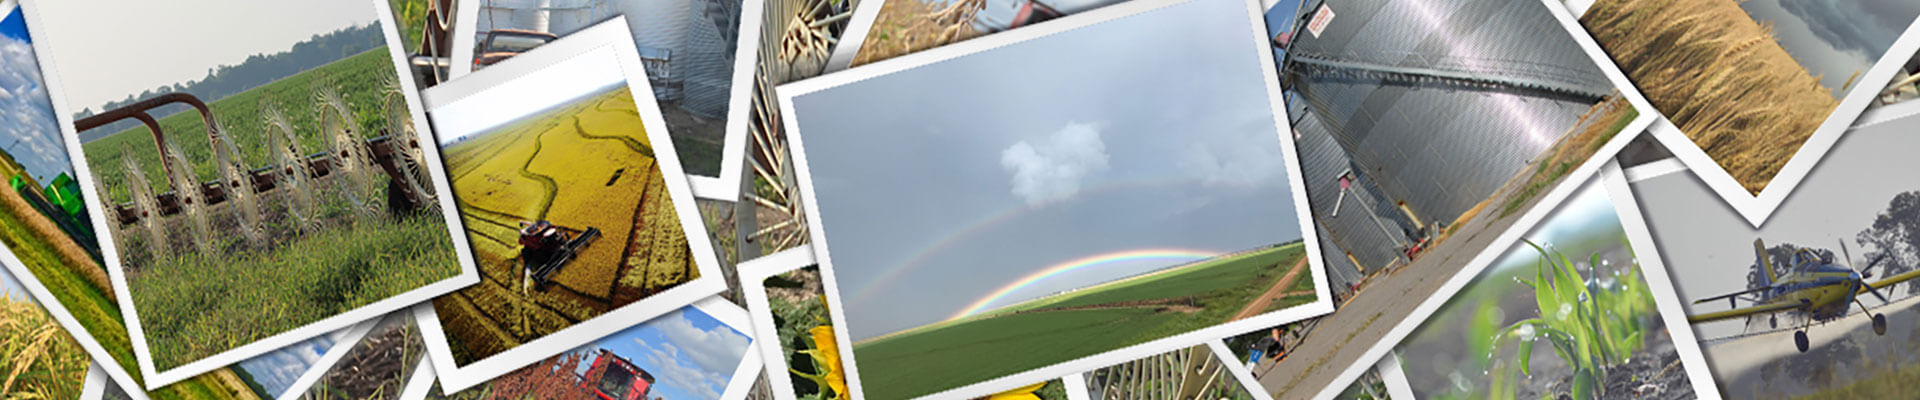 A collection of various photos taken by Farmers.